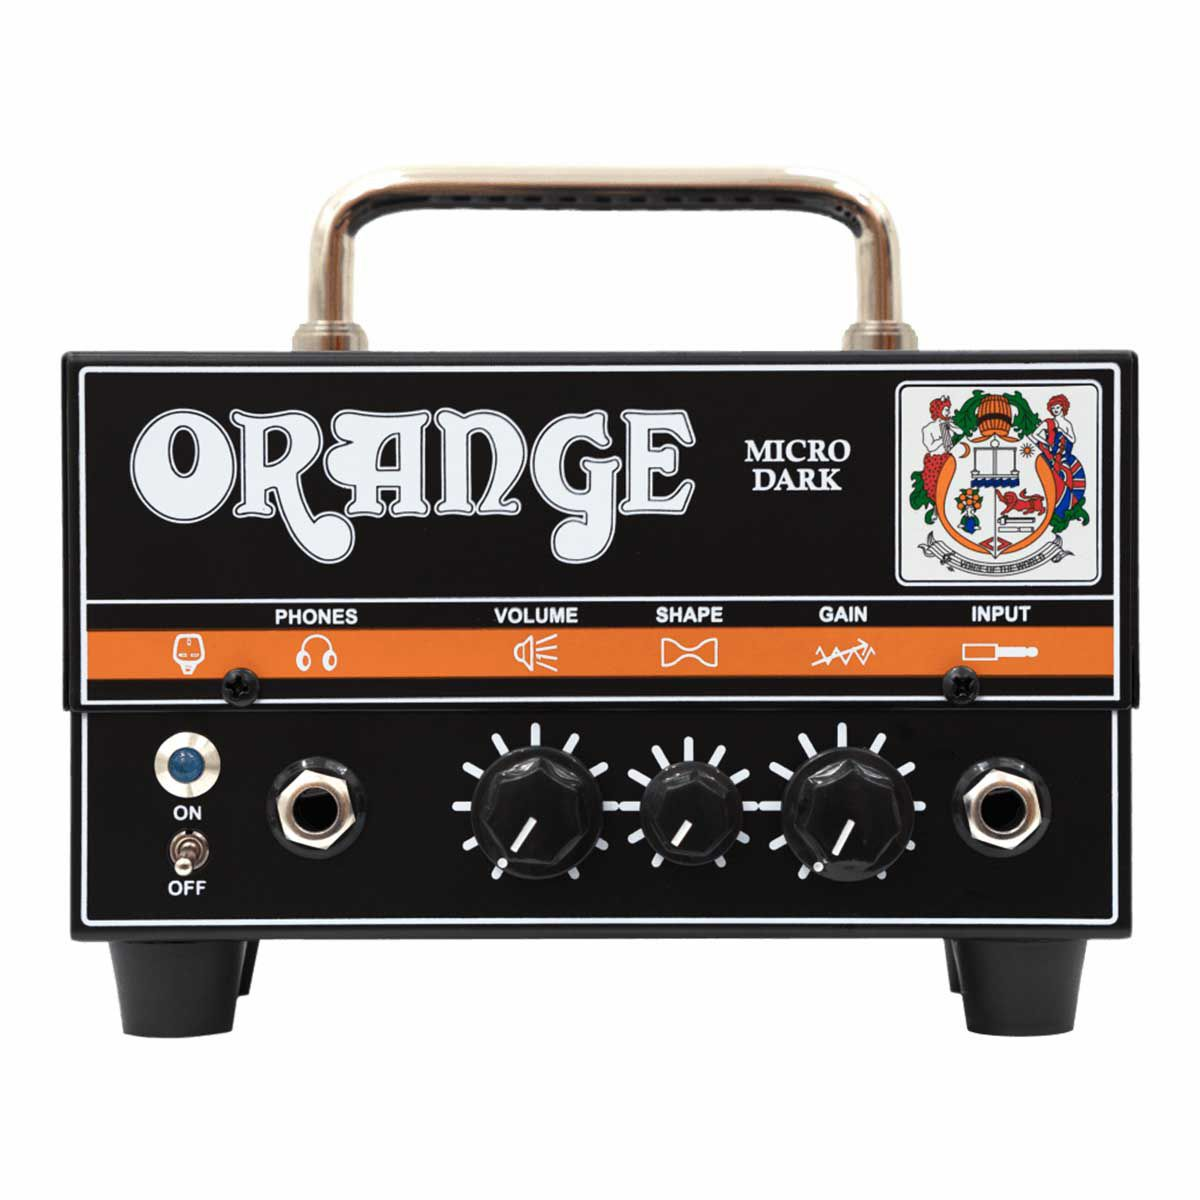 Cabeçote Valvulado Orange Micro Dark Head 20W Híbrido